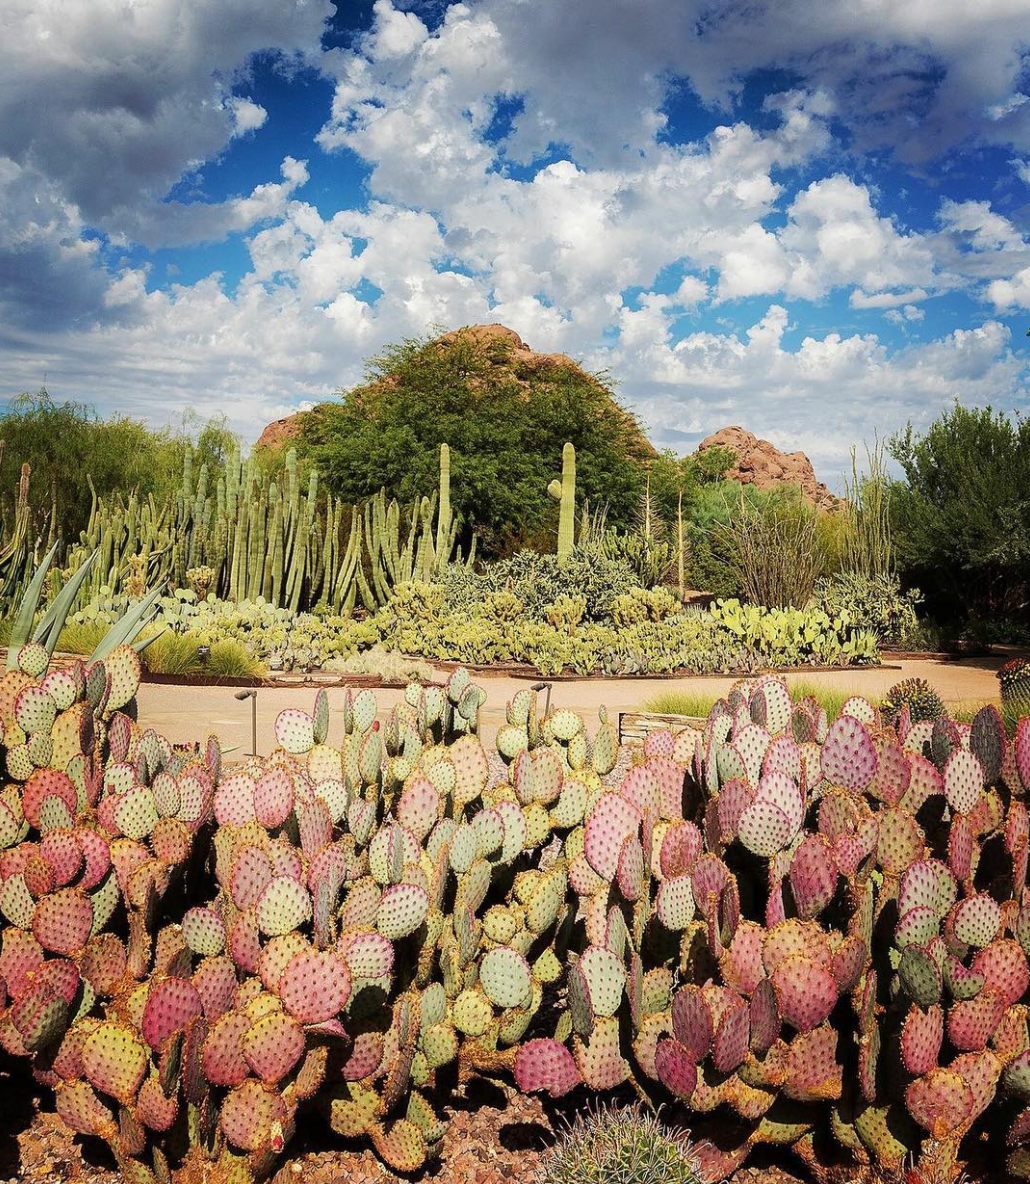 Phoenix, Arizona Travel Guide: Desert Botanical Garden Phoenix AZ